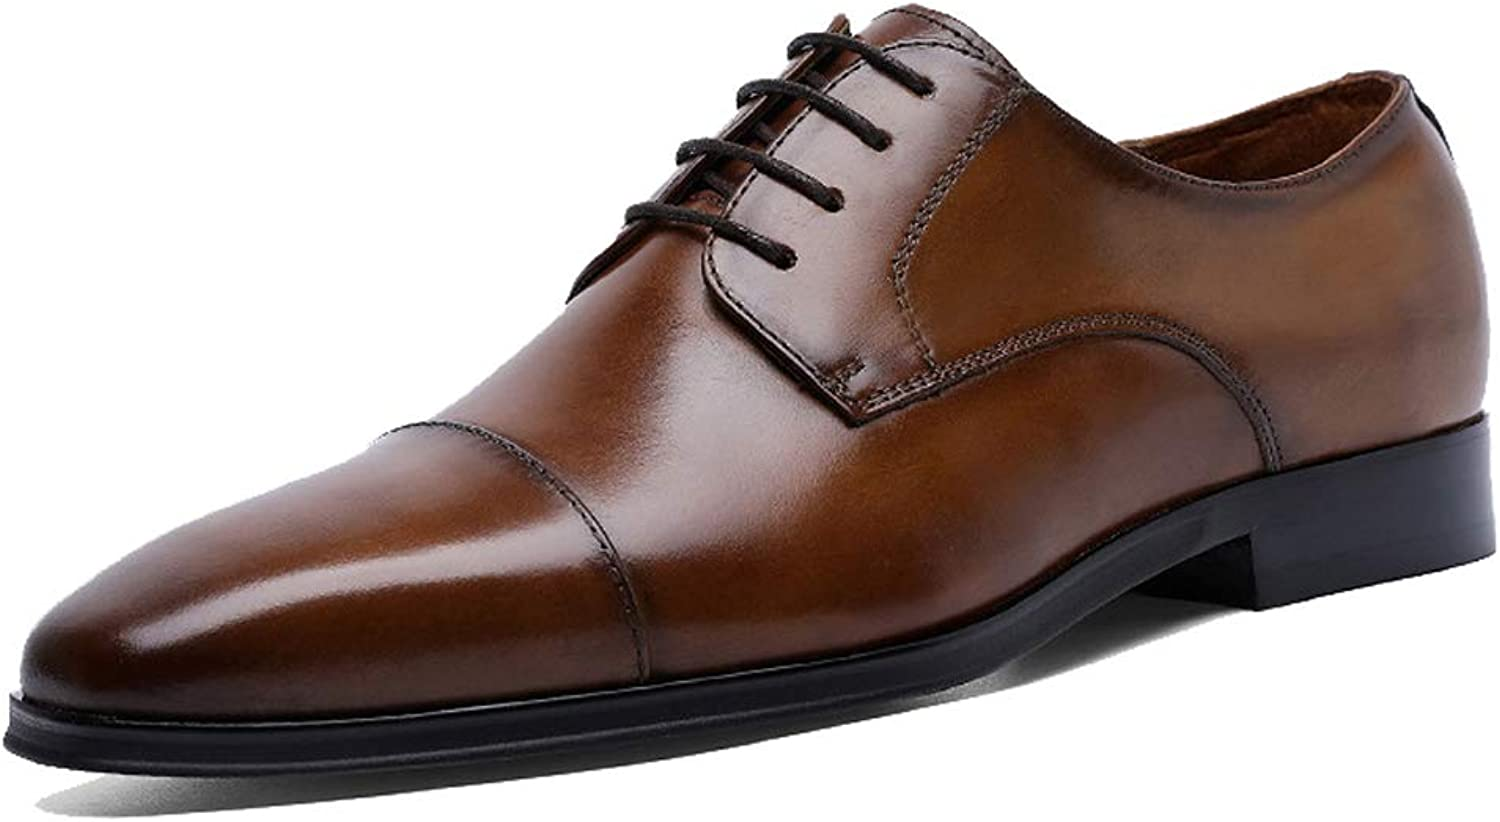 Men's Oxford shoes Derby shoes Business Dress Three-joint shoes Casual shoes Lace-up shoes